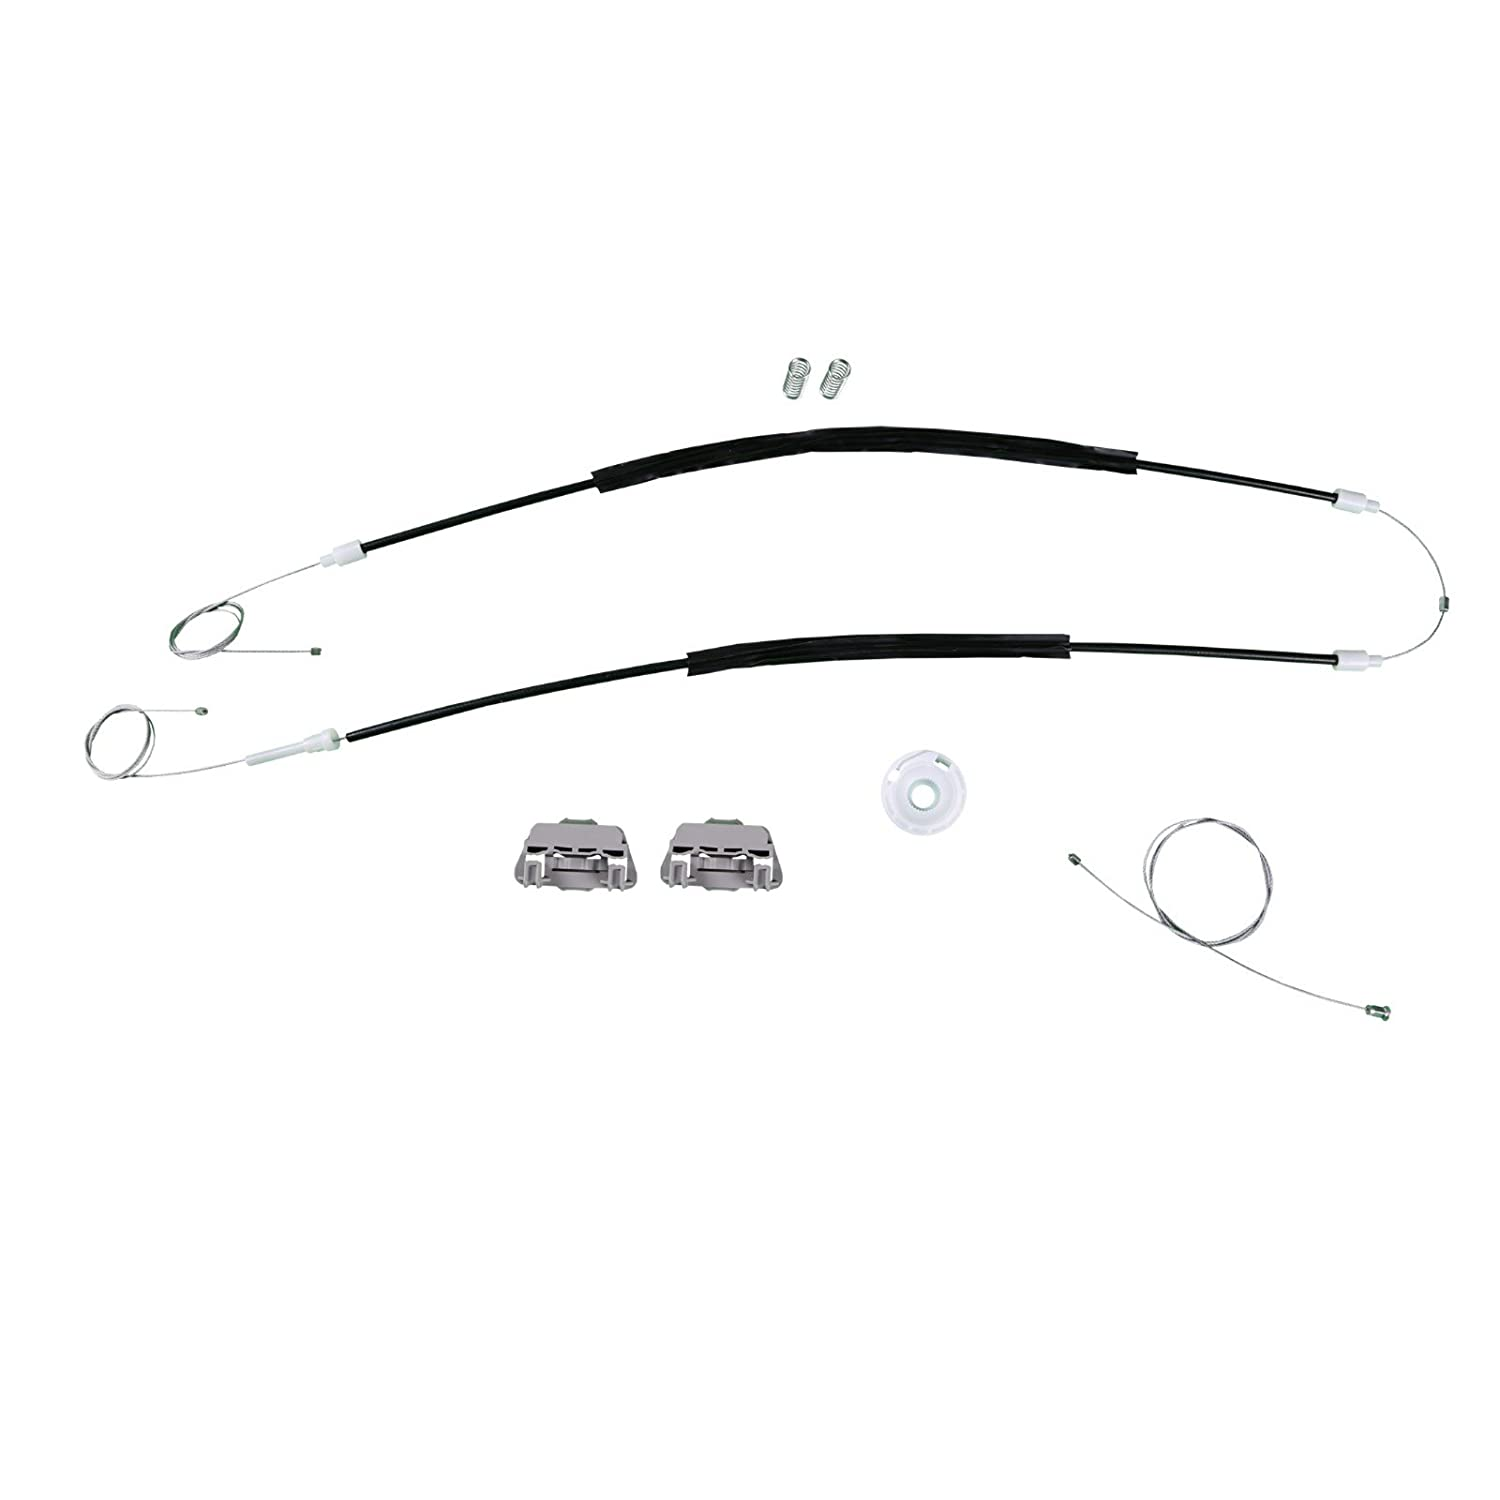 Bross BWR551FBA Window Regulator Repair Kit Front Right Door for Ford Focus Coupe 1998-2005 Bross Auto Parts